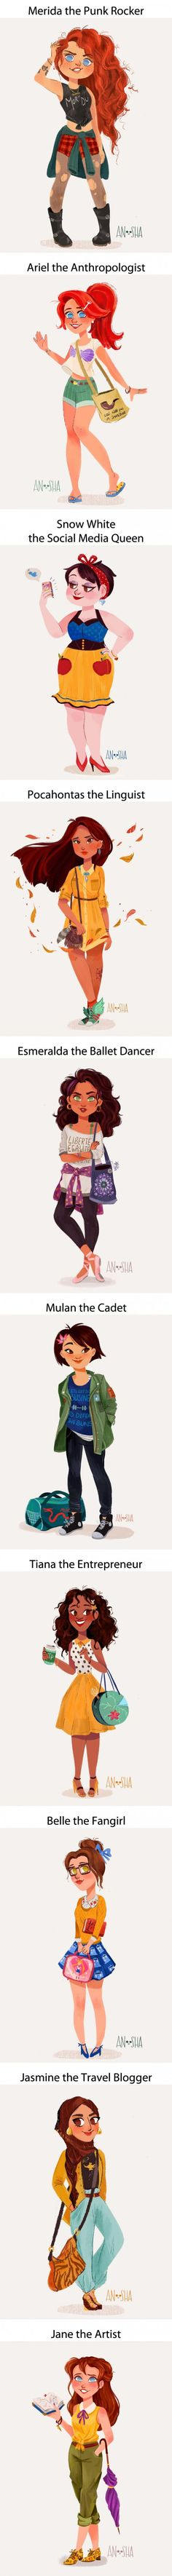 If Disney Princess Lived In The 21st Century As Modern Day Girls (by Anoosha Syed). So beautiful I wnat to see more of them